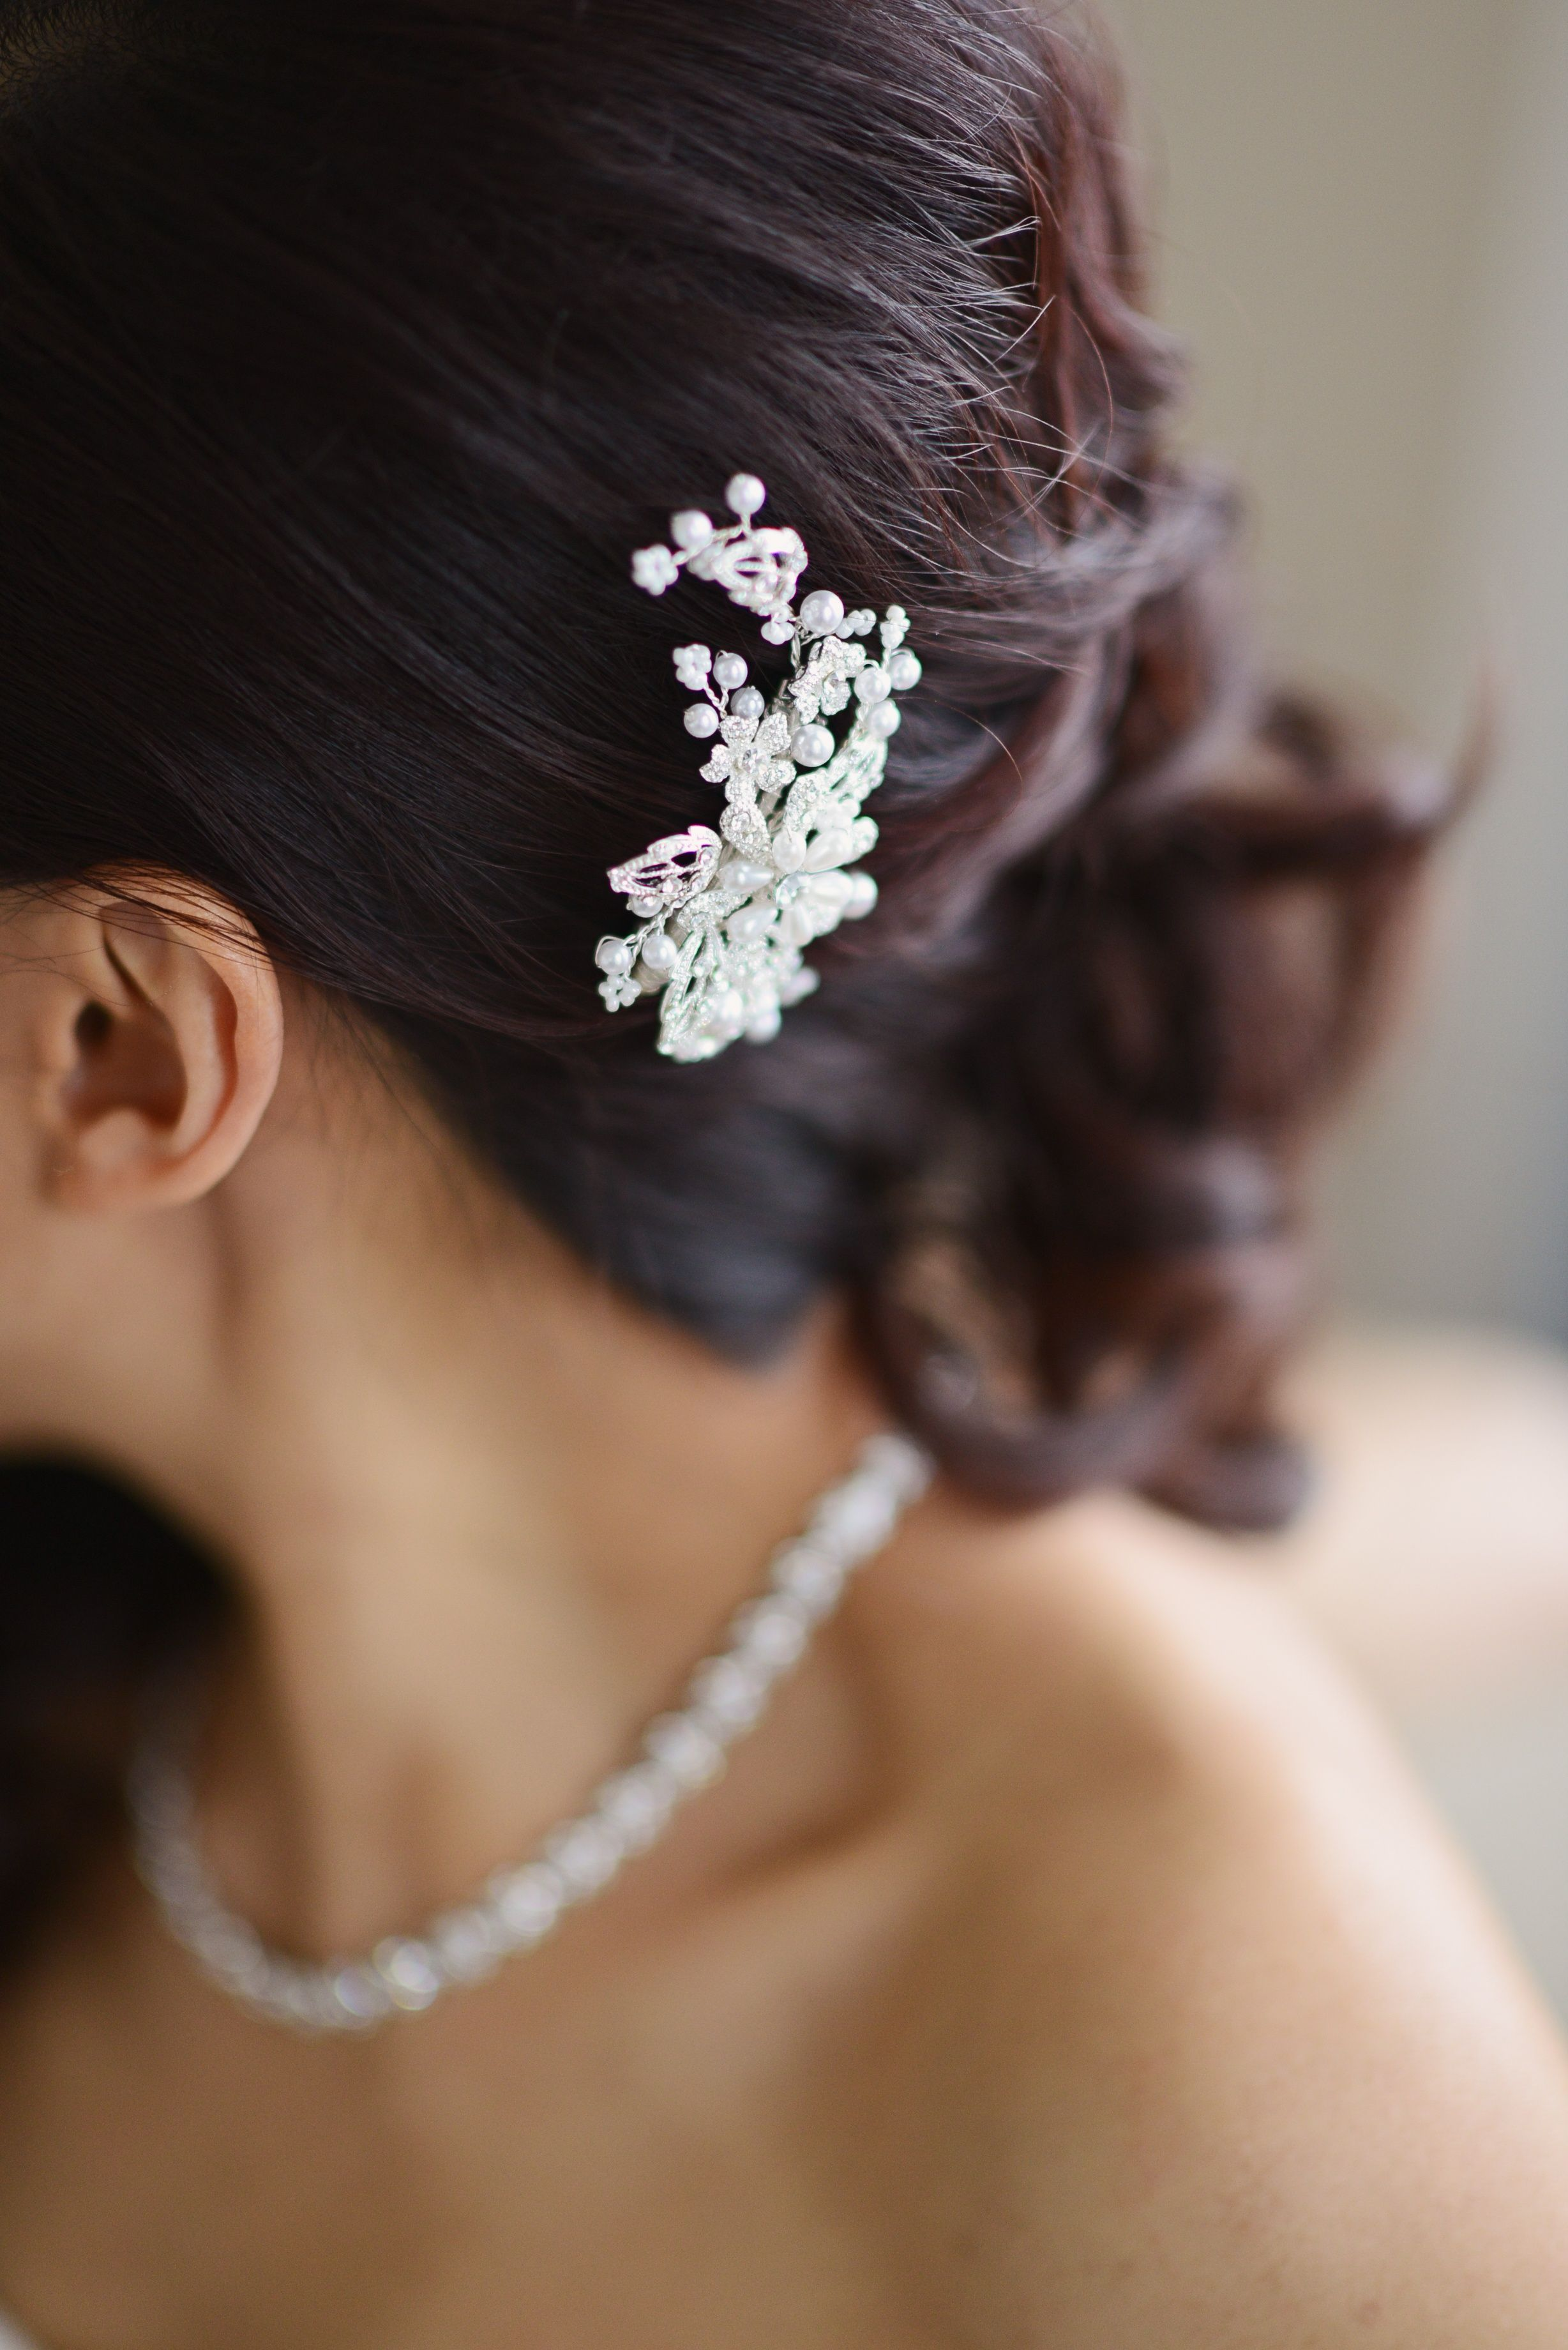 Crystal and Pearl Hair Accessory | Annie Tao Photography | Theknot.com